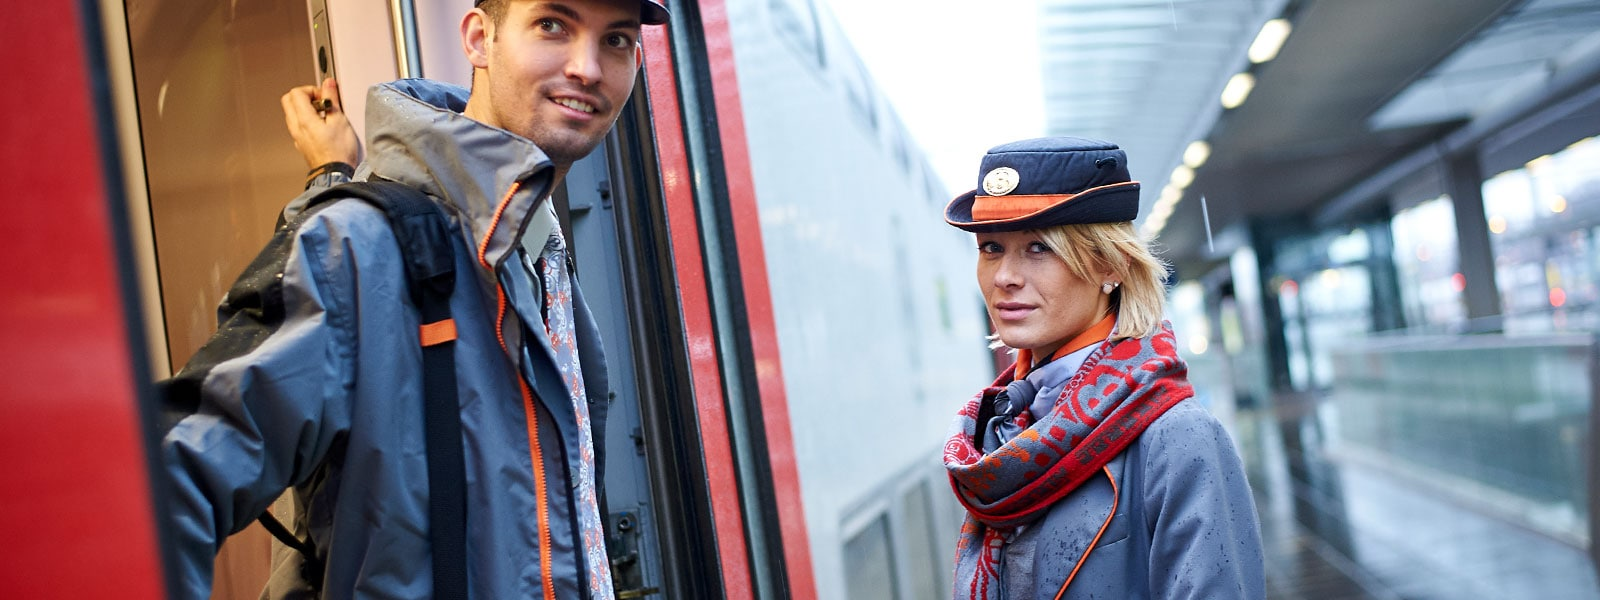 Equipping the train operator of tomorrow - Client case study